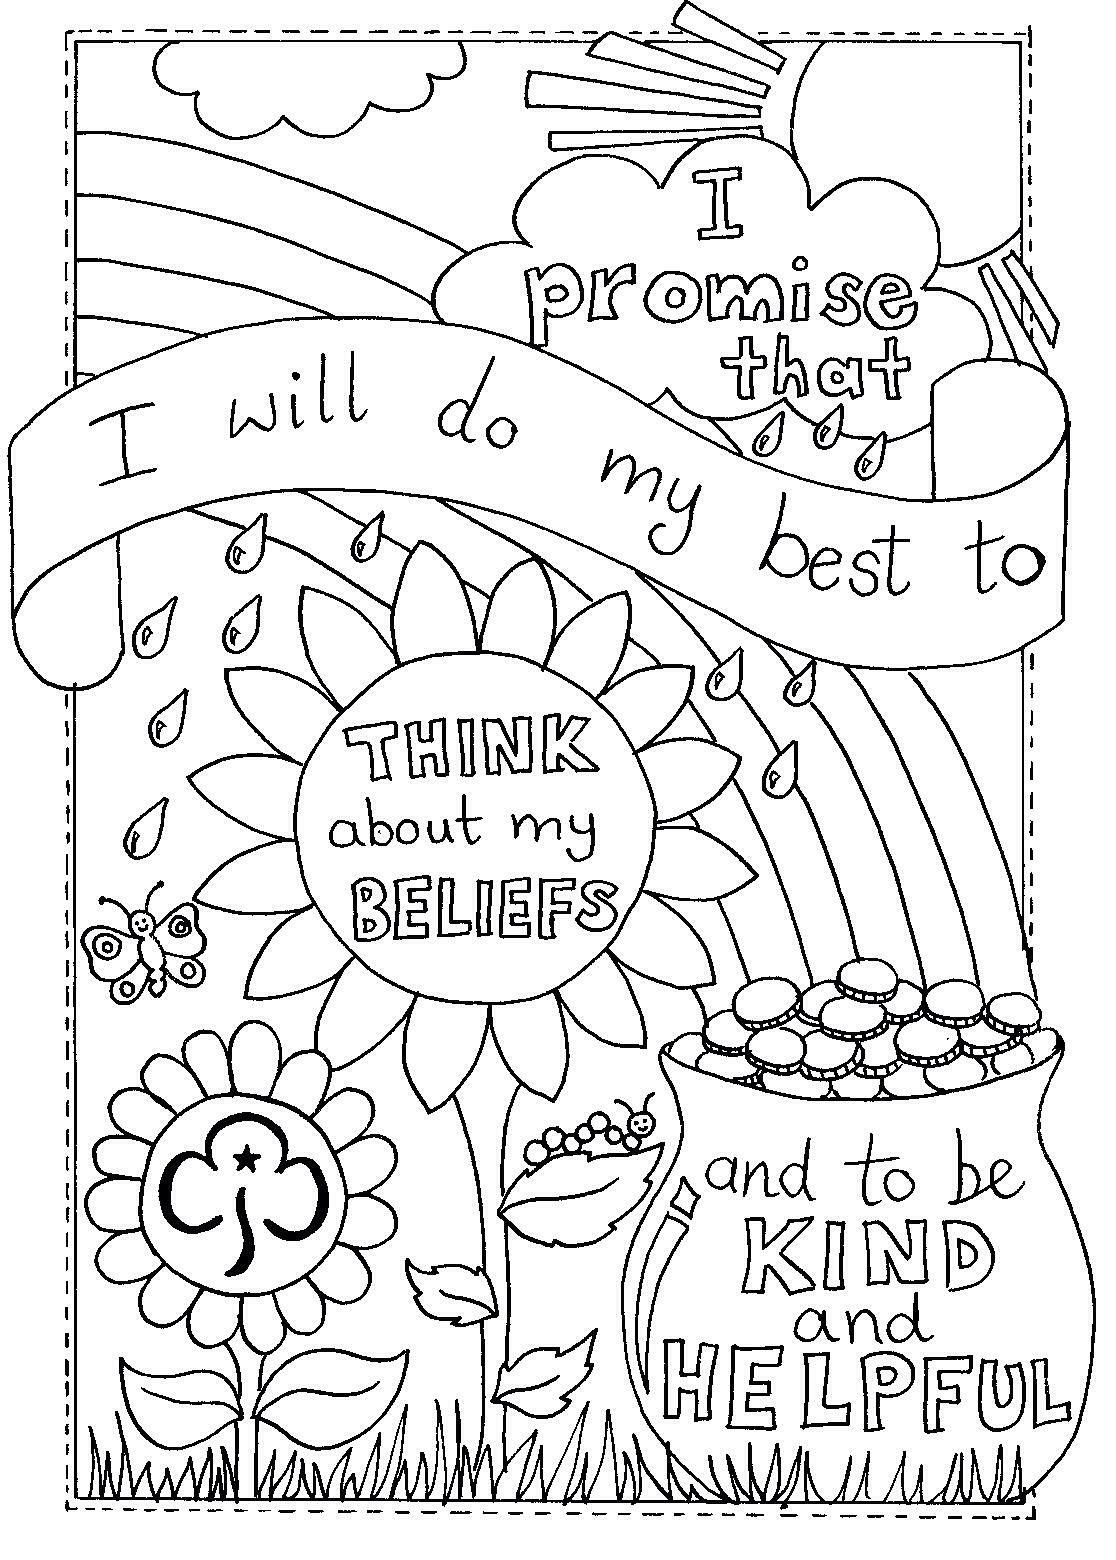 such a cute coloring page to think about our own beliefs and those